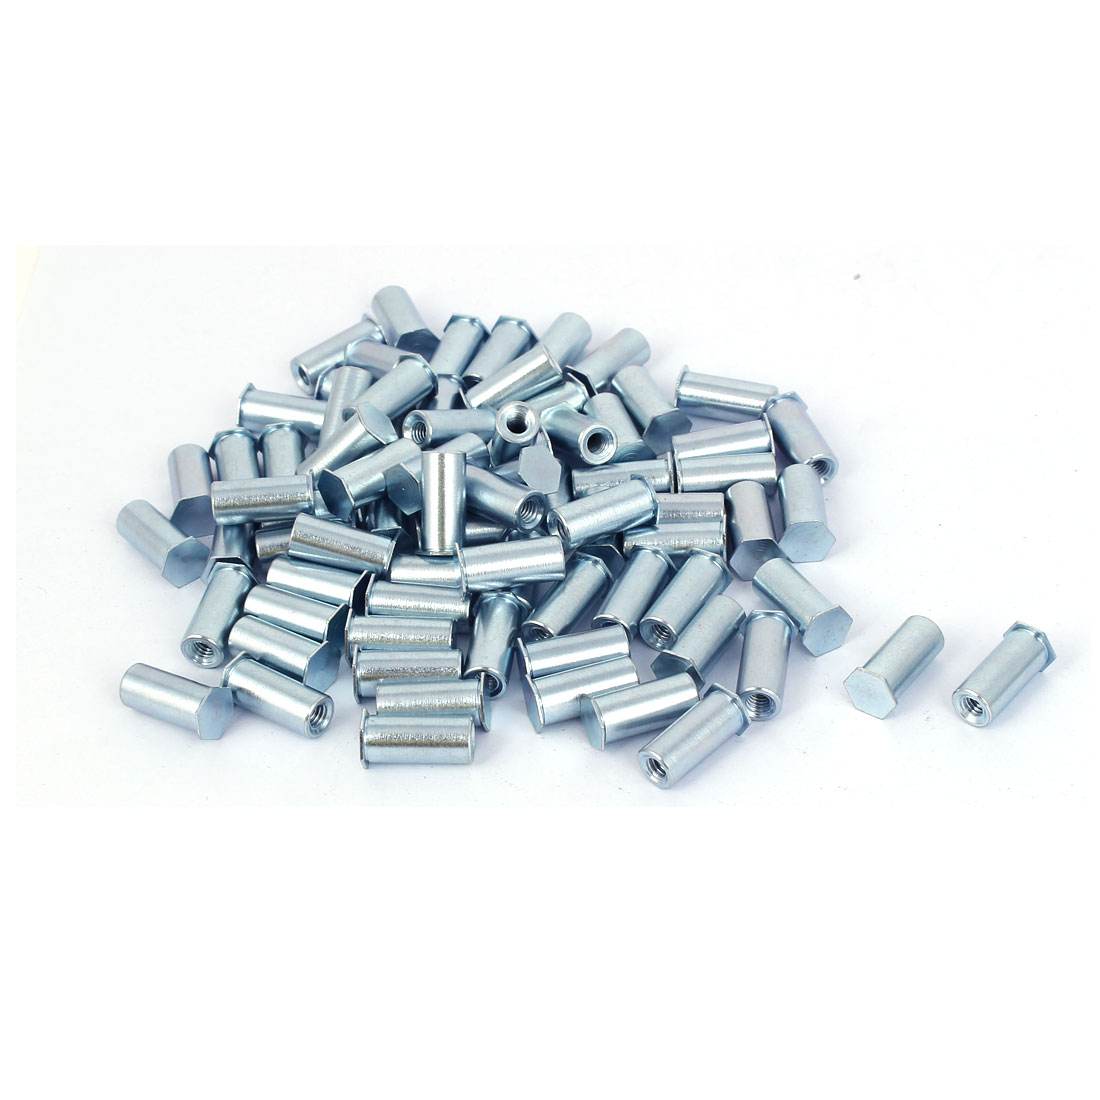 Carbon Steel Zinc Plated Hex Head Full Thread Self Clinching Standoff Silver Tone M4x16mm 100pcs